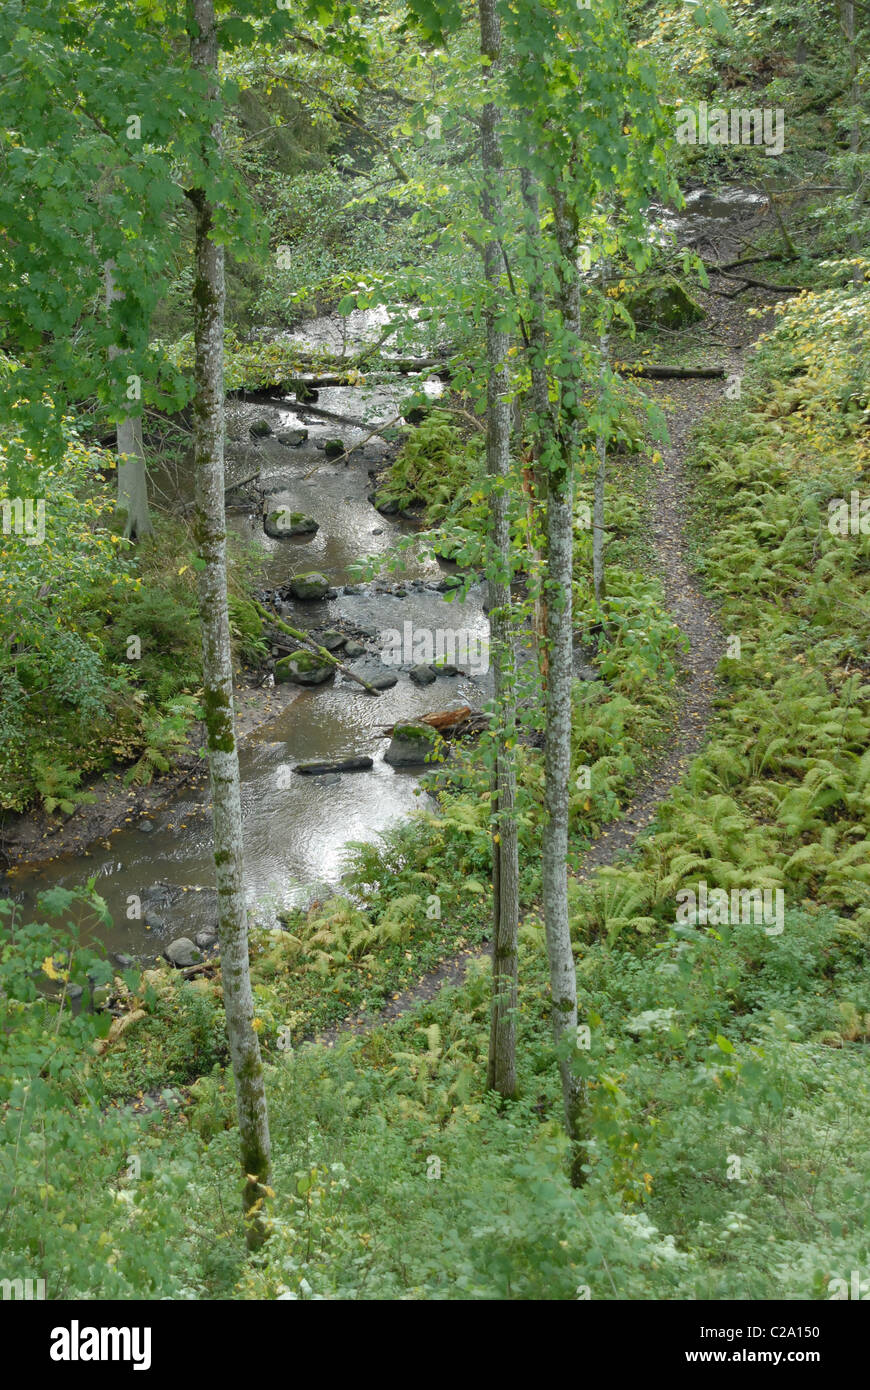 Stream flowing through a microclimate ravine. - Stock Image